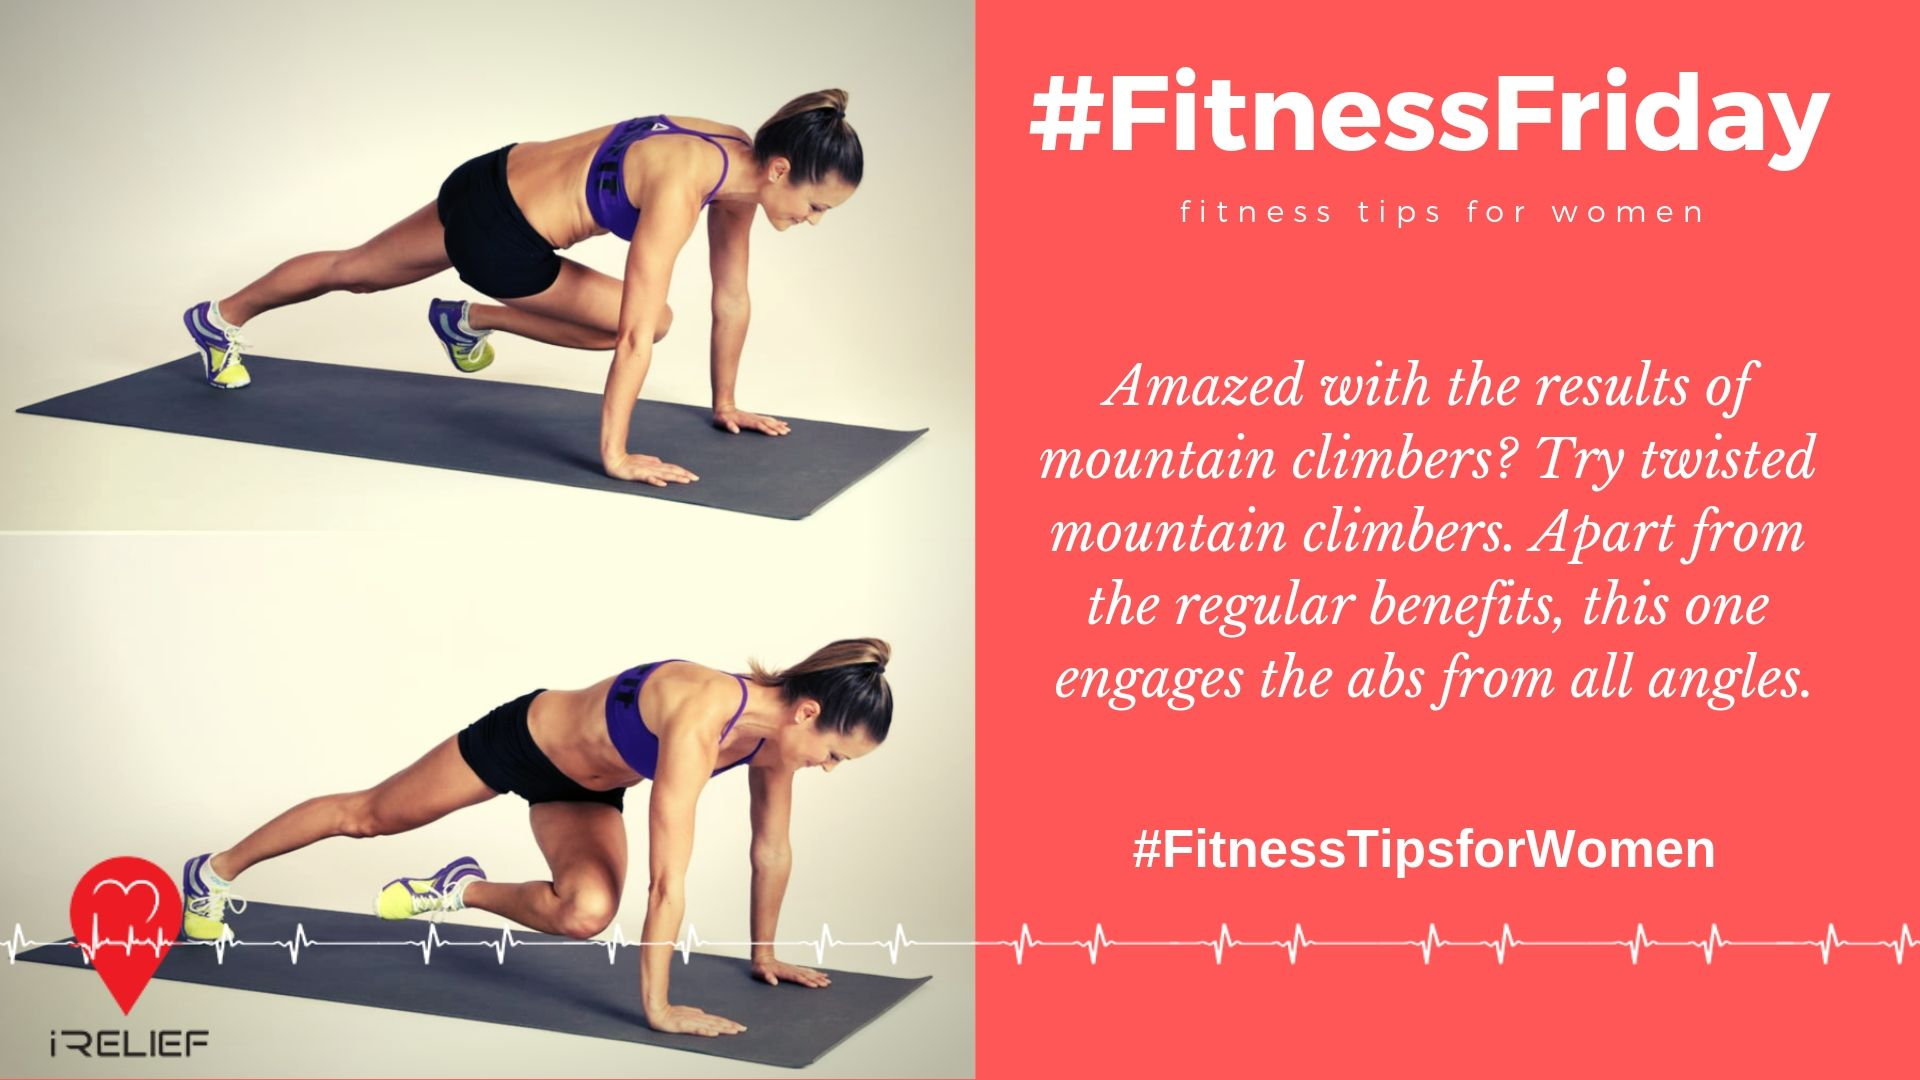 Amazed With The Results Of Mountain Climbers Try Twisted Mountain Climbers Apart From The Regular Ben Fitness Tips For Women Friday Workout Emergency Medical